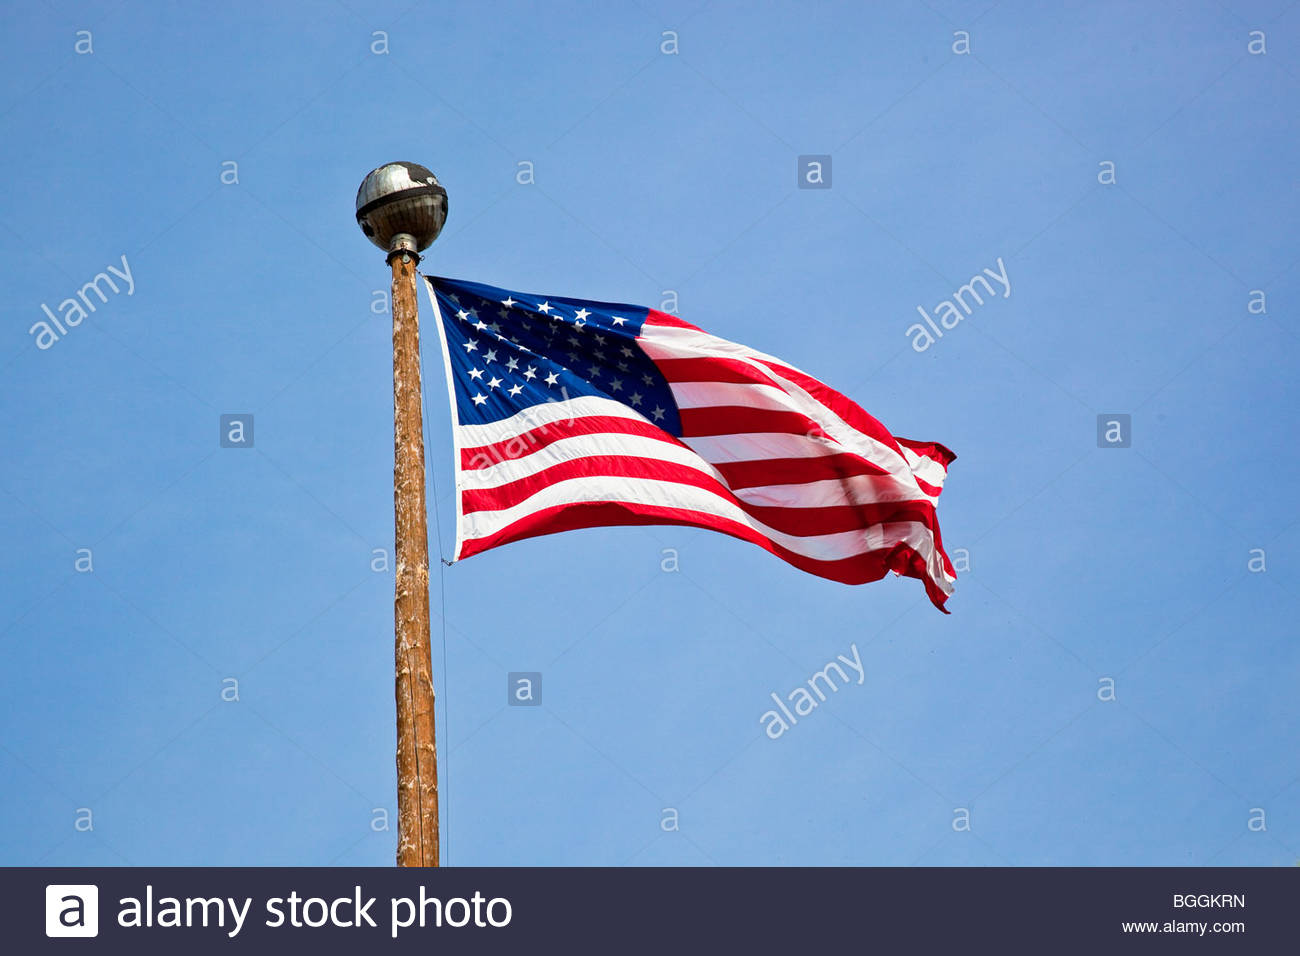 Brilliant American flag flying atop the pole on the Delaney Park Strip in Anchorage, Alaska on July 4, 2009 against - Stock Image